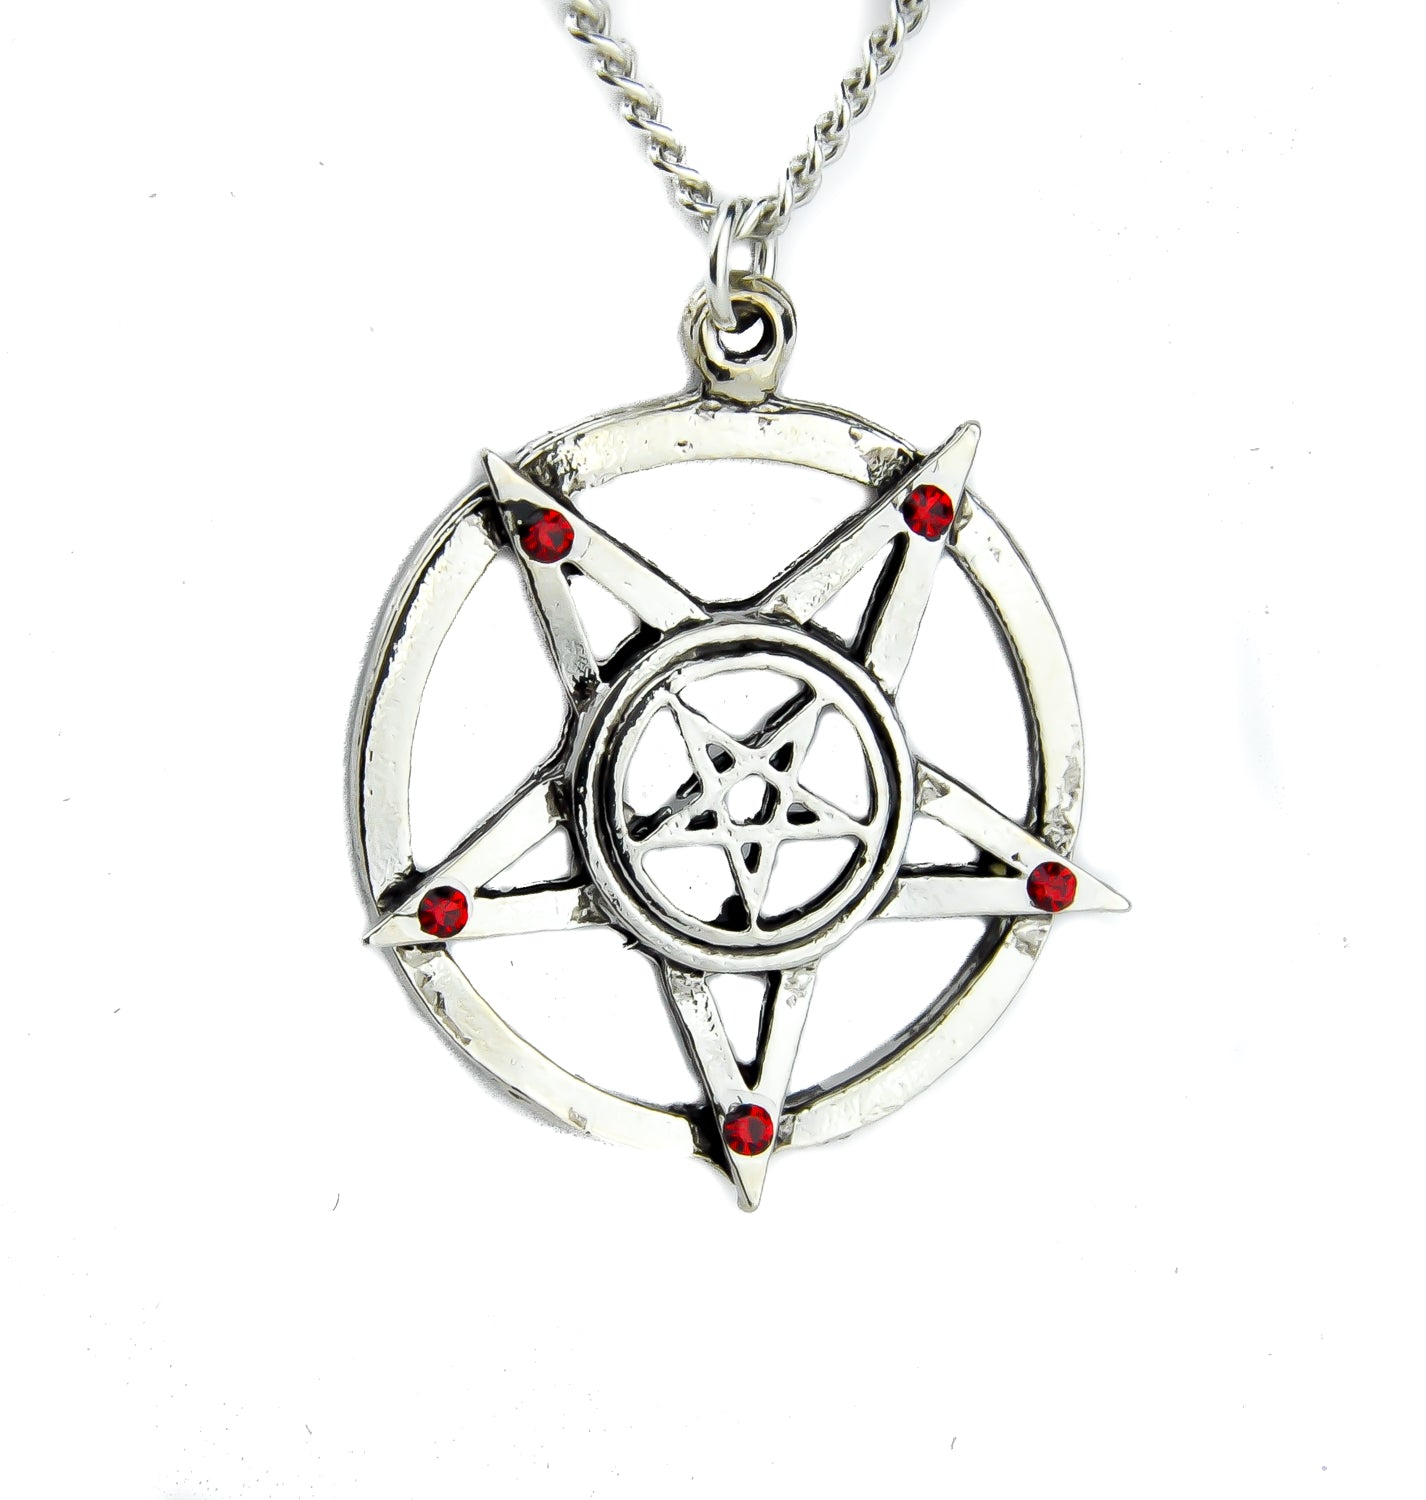 Ritual Inverted Pentagram Necklace with Red Stones Alternative Occult Jewelry